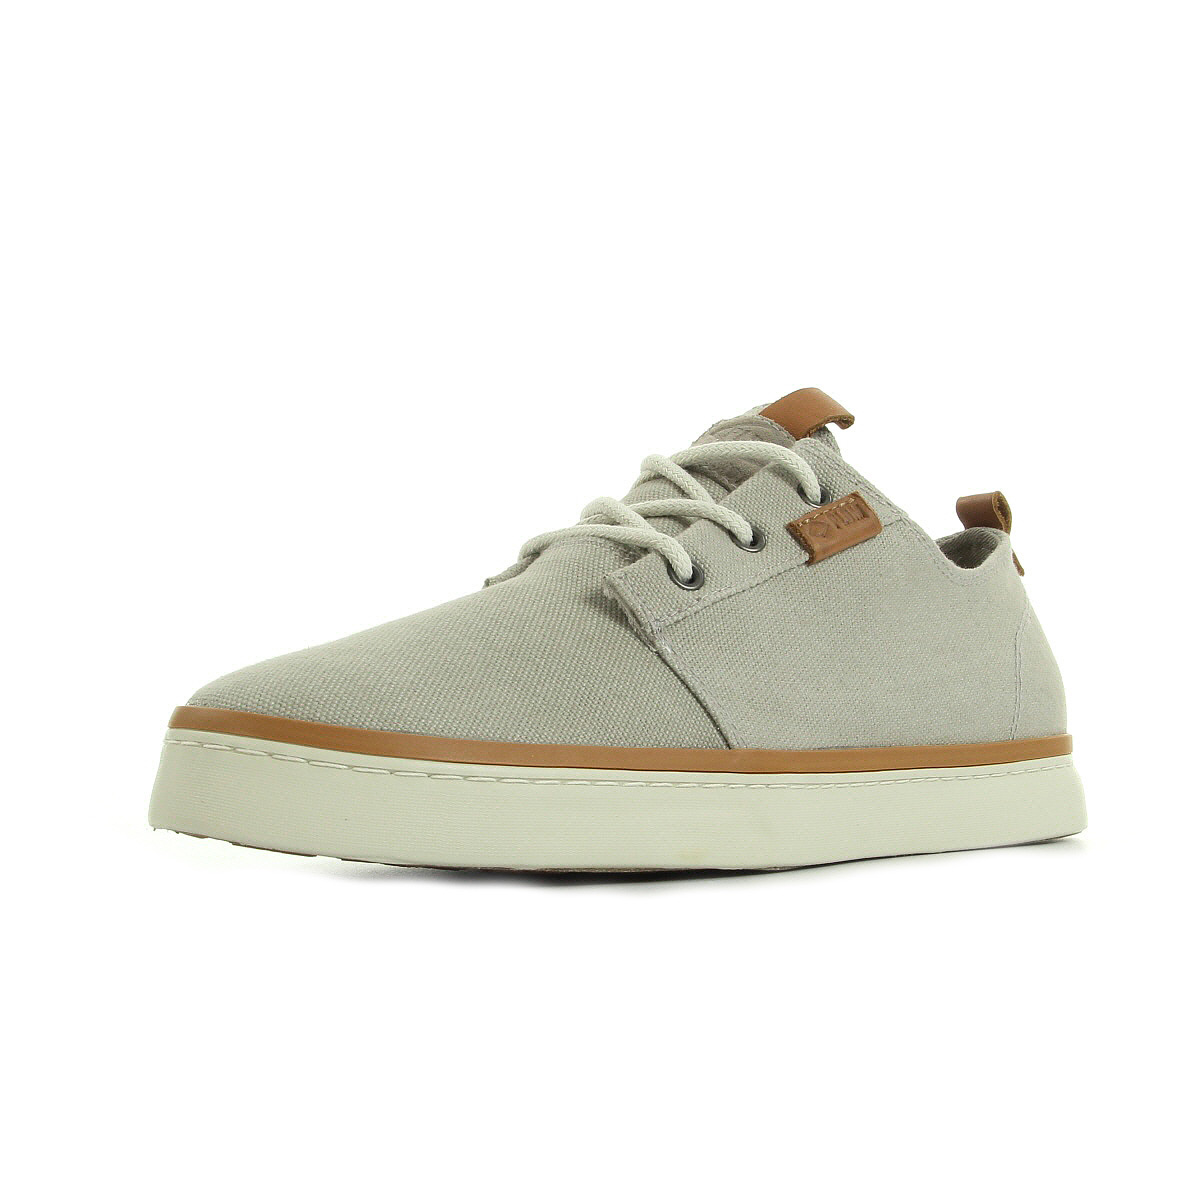 palladium free cvs taupe 74140094  baskets mode homme